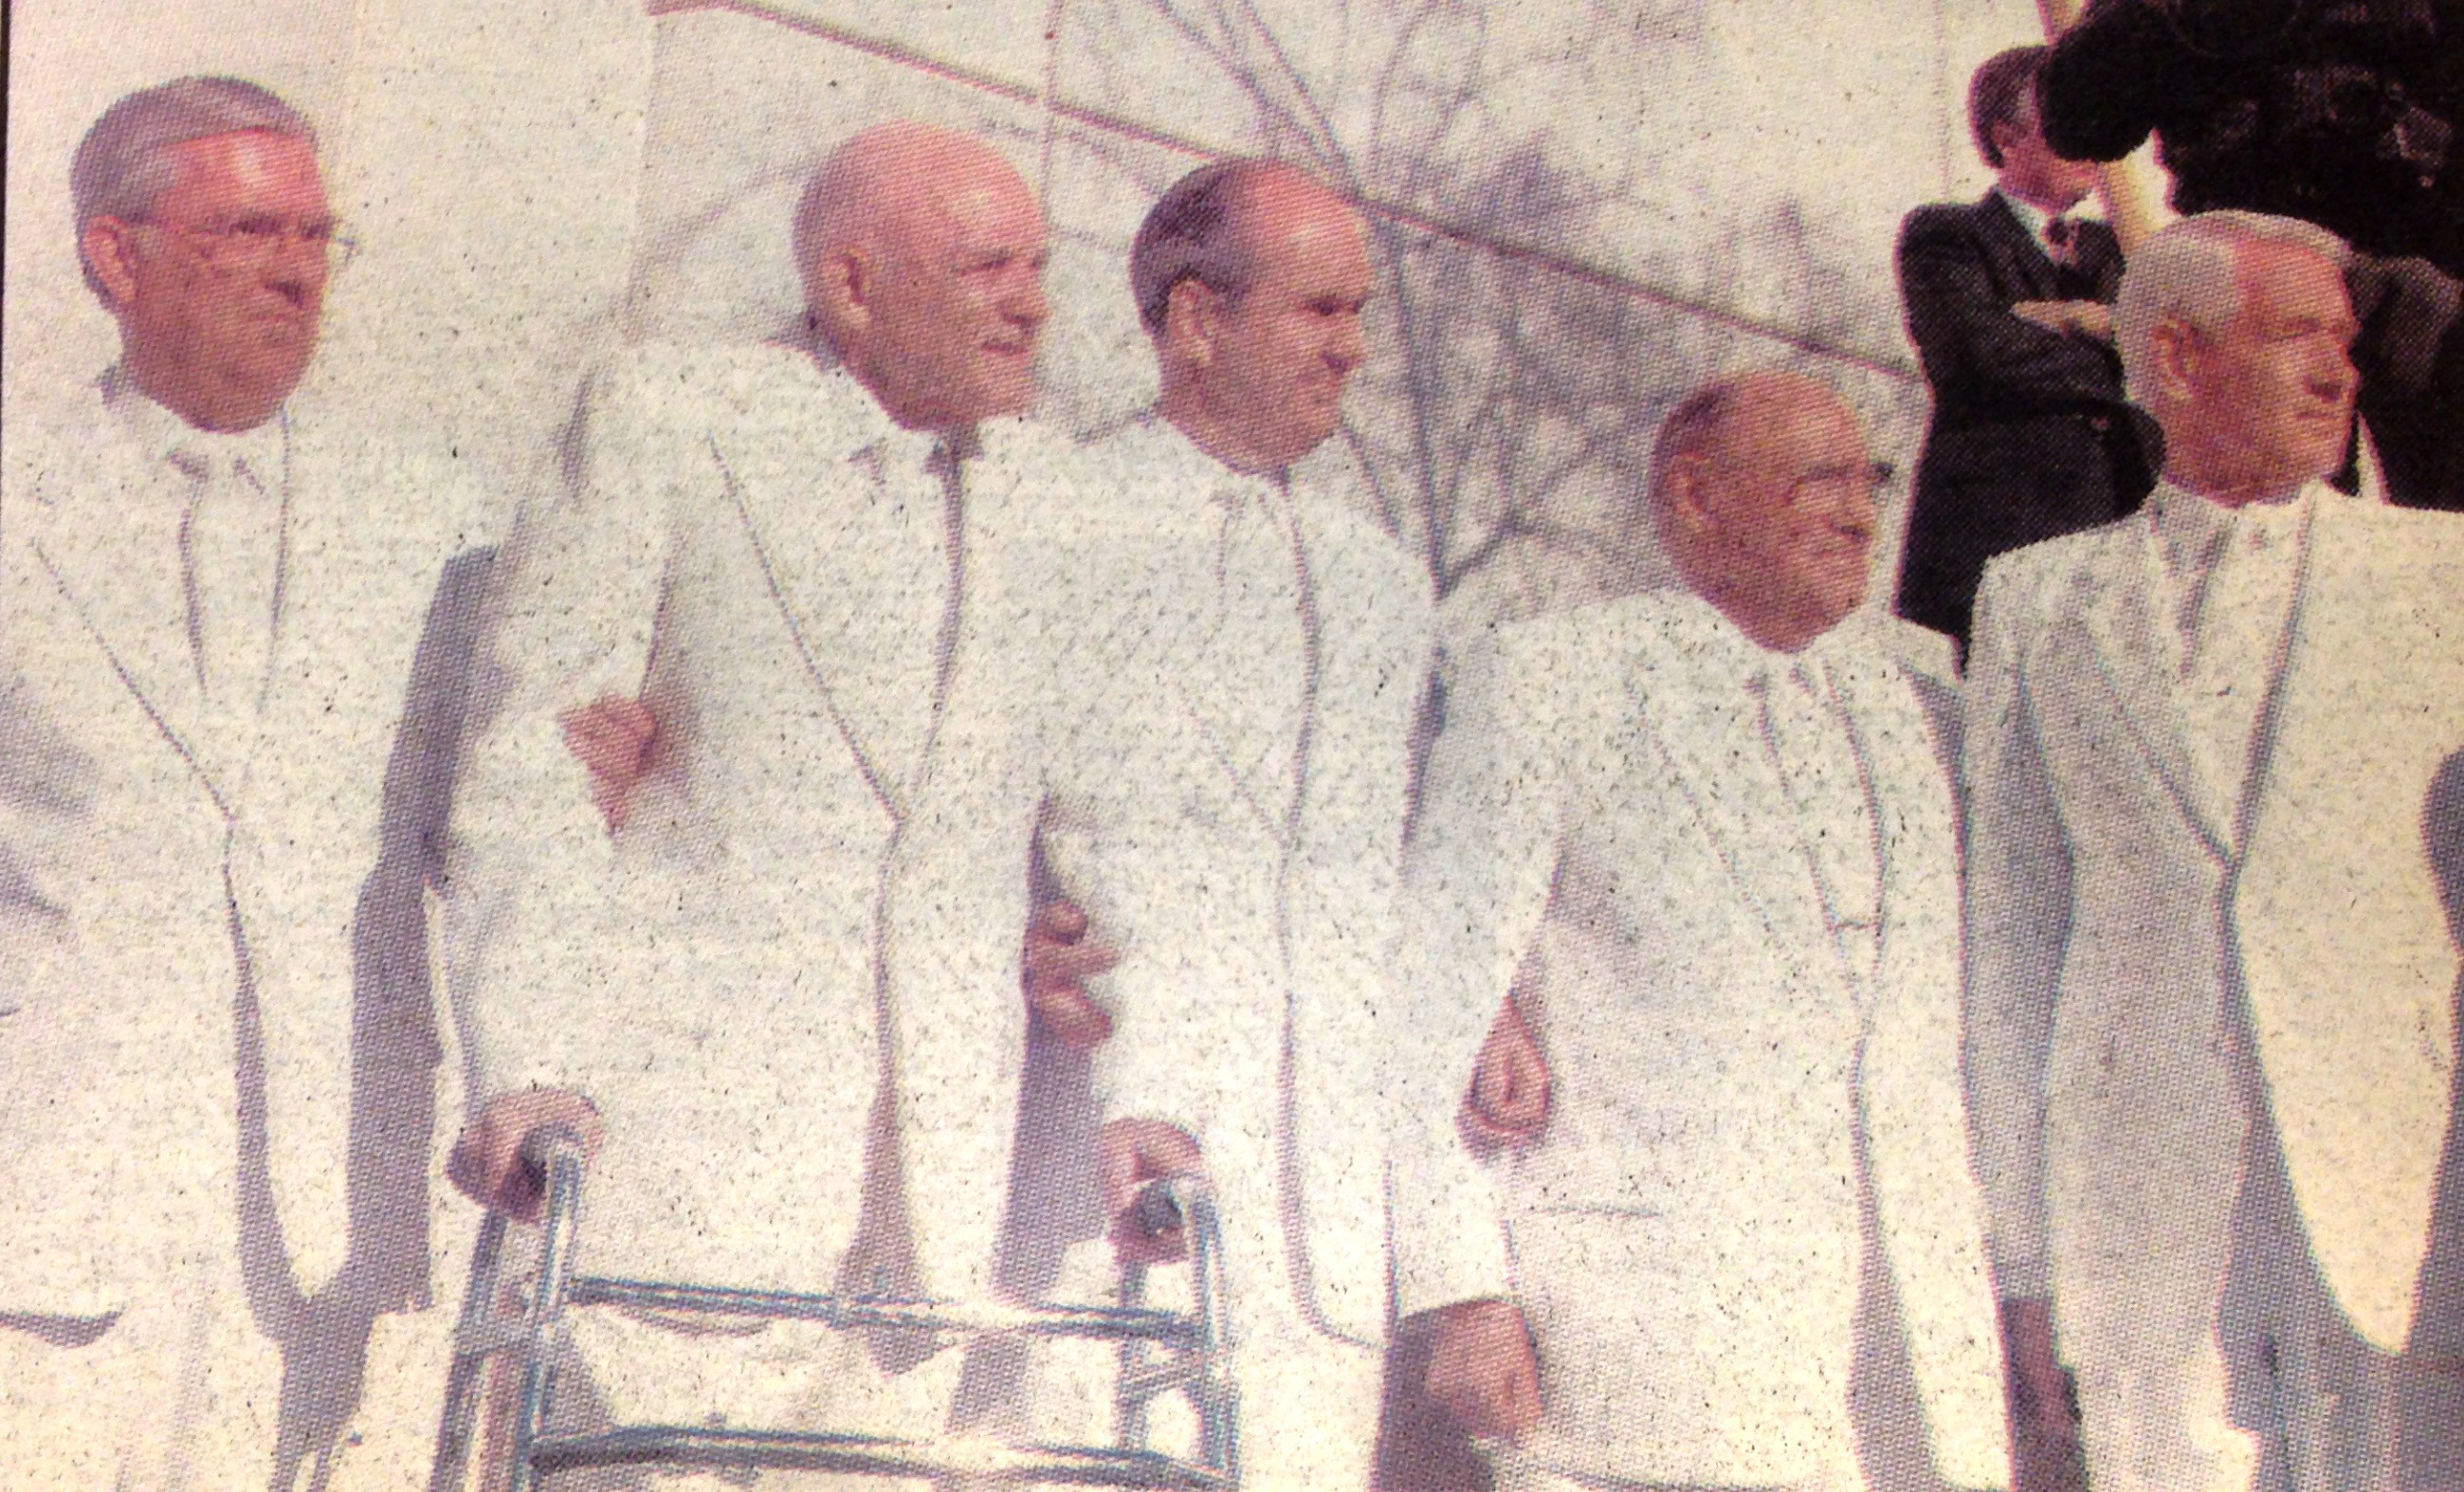 Elder Dean L. Larsen, right end, stands with Elder M. Russell Ballard, left end, President Howard W. Hunter, and Elders Russell M. Nelson and Joseph B. Wirthlin to watch the cornerstone laying at the dedication of the Las Vegas Temple in 1989.